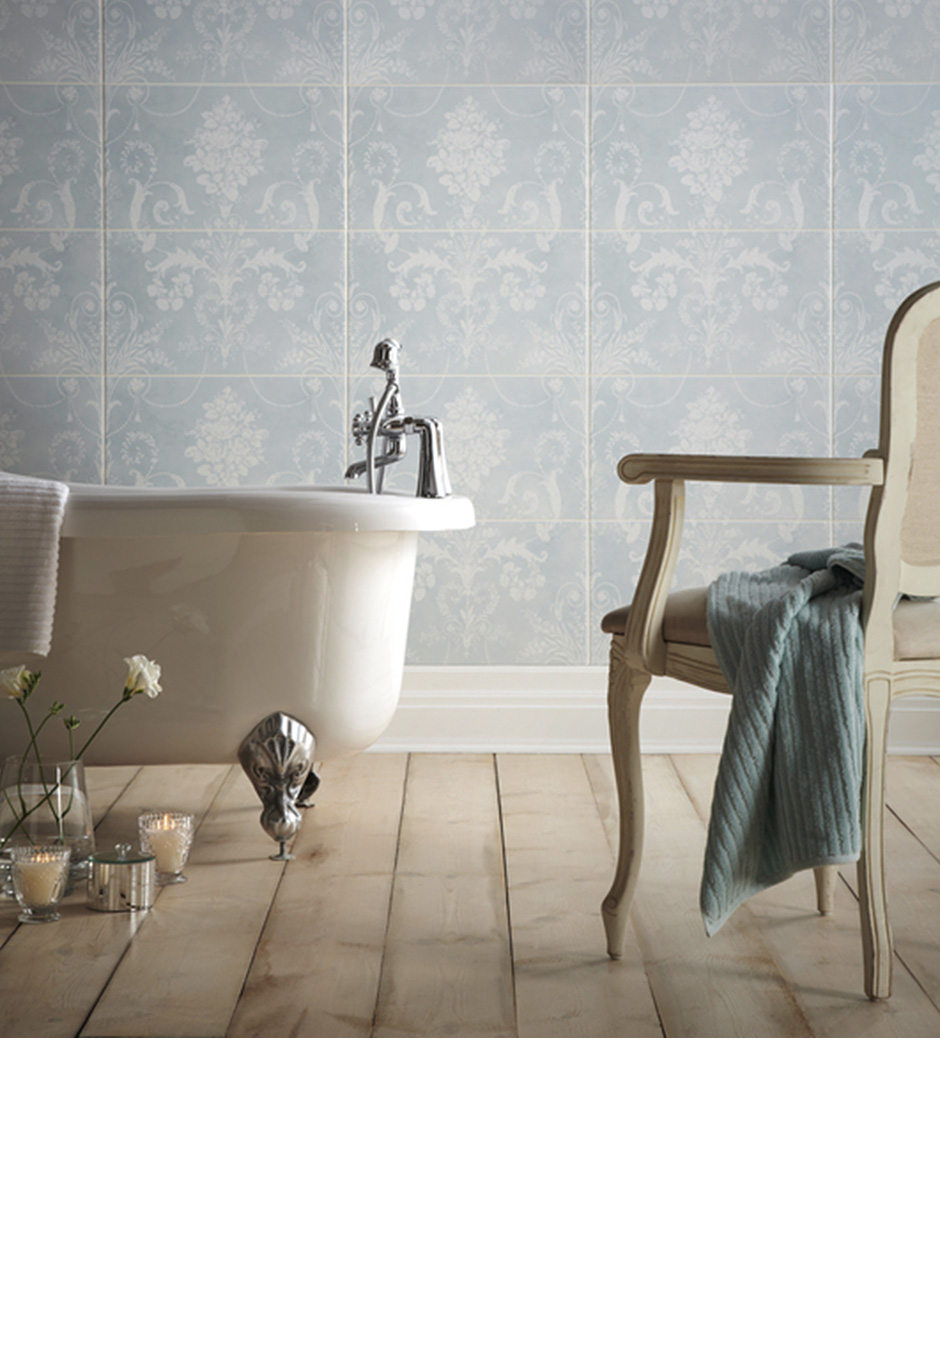 Laura ashley tiles explore the entire collection of designer tiles josette dailygadgetfo Choice Image